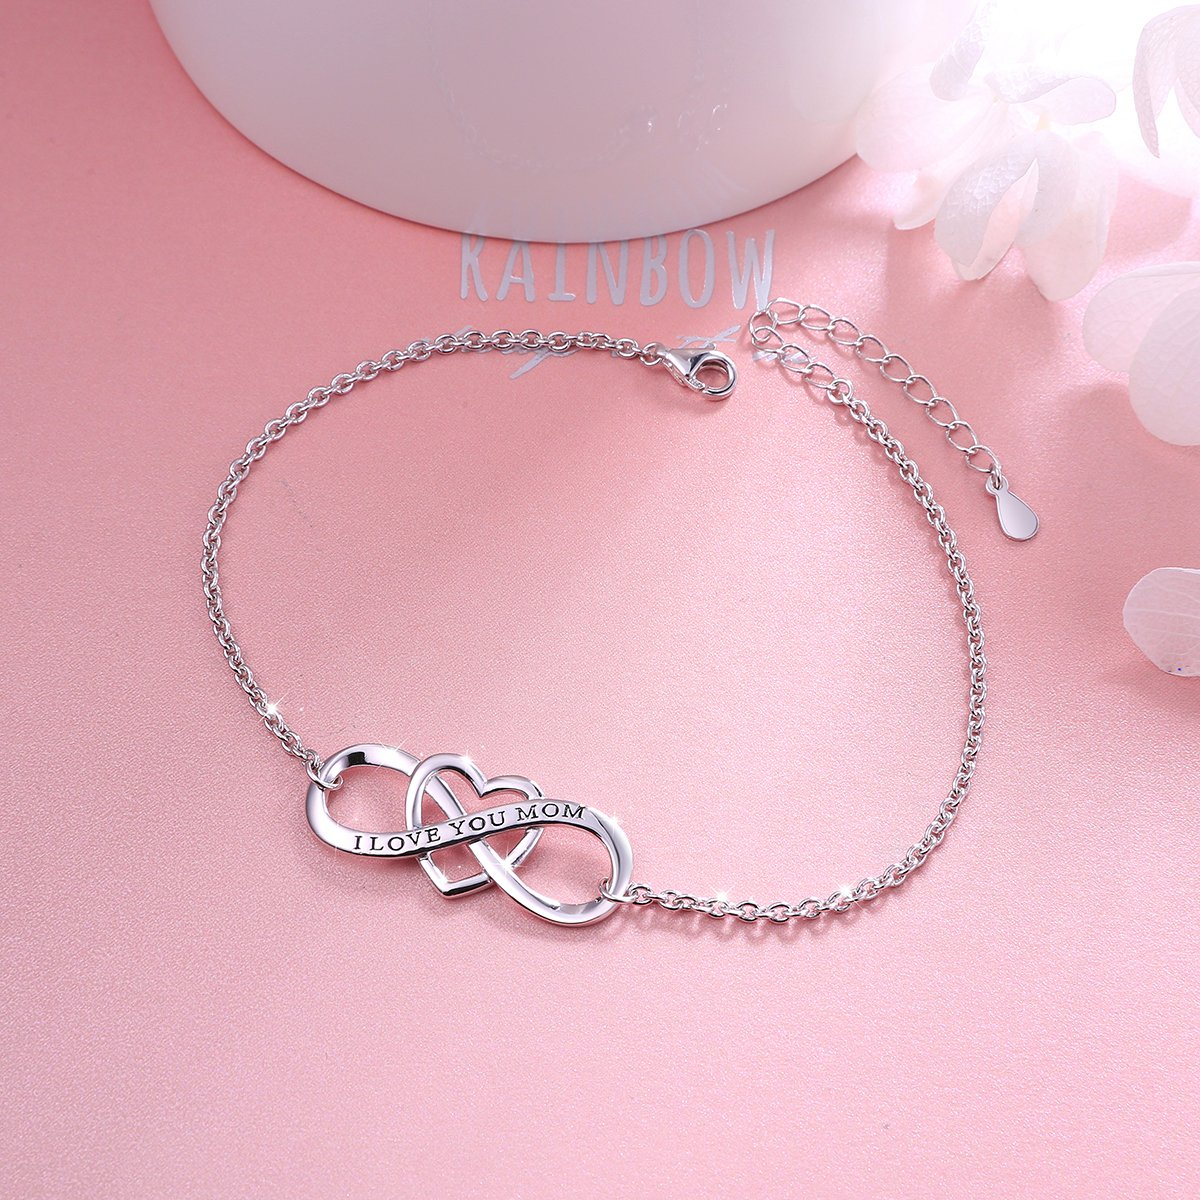 """SILVER MOUNTAIN S925 Sterling Silver """"I Love You Mom """" Heart Infinity Bracelet for Mother by SILVER MOUNTAIN (Image #2)"""